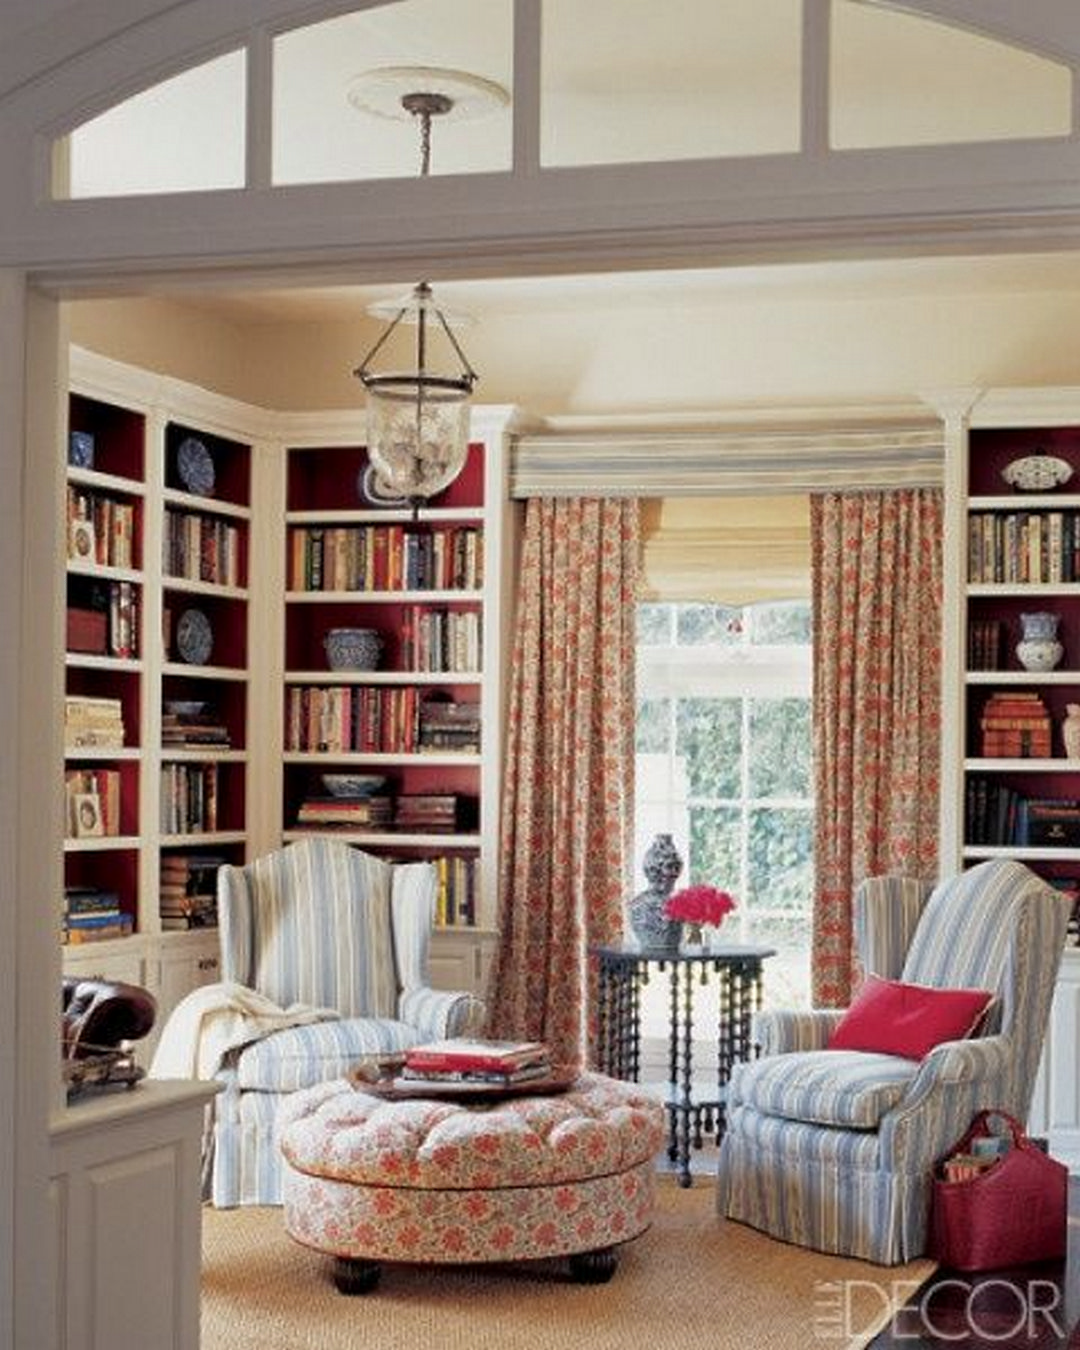 Home Library Room: Impress Home Buys With 7 Savvy Home Improvement Ideas On A